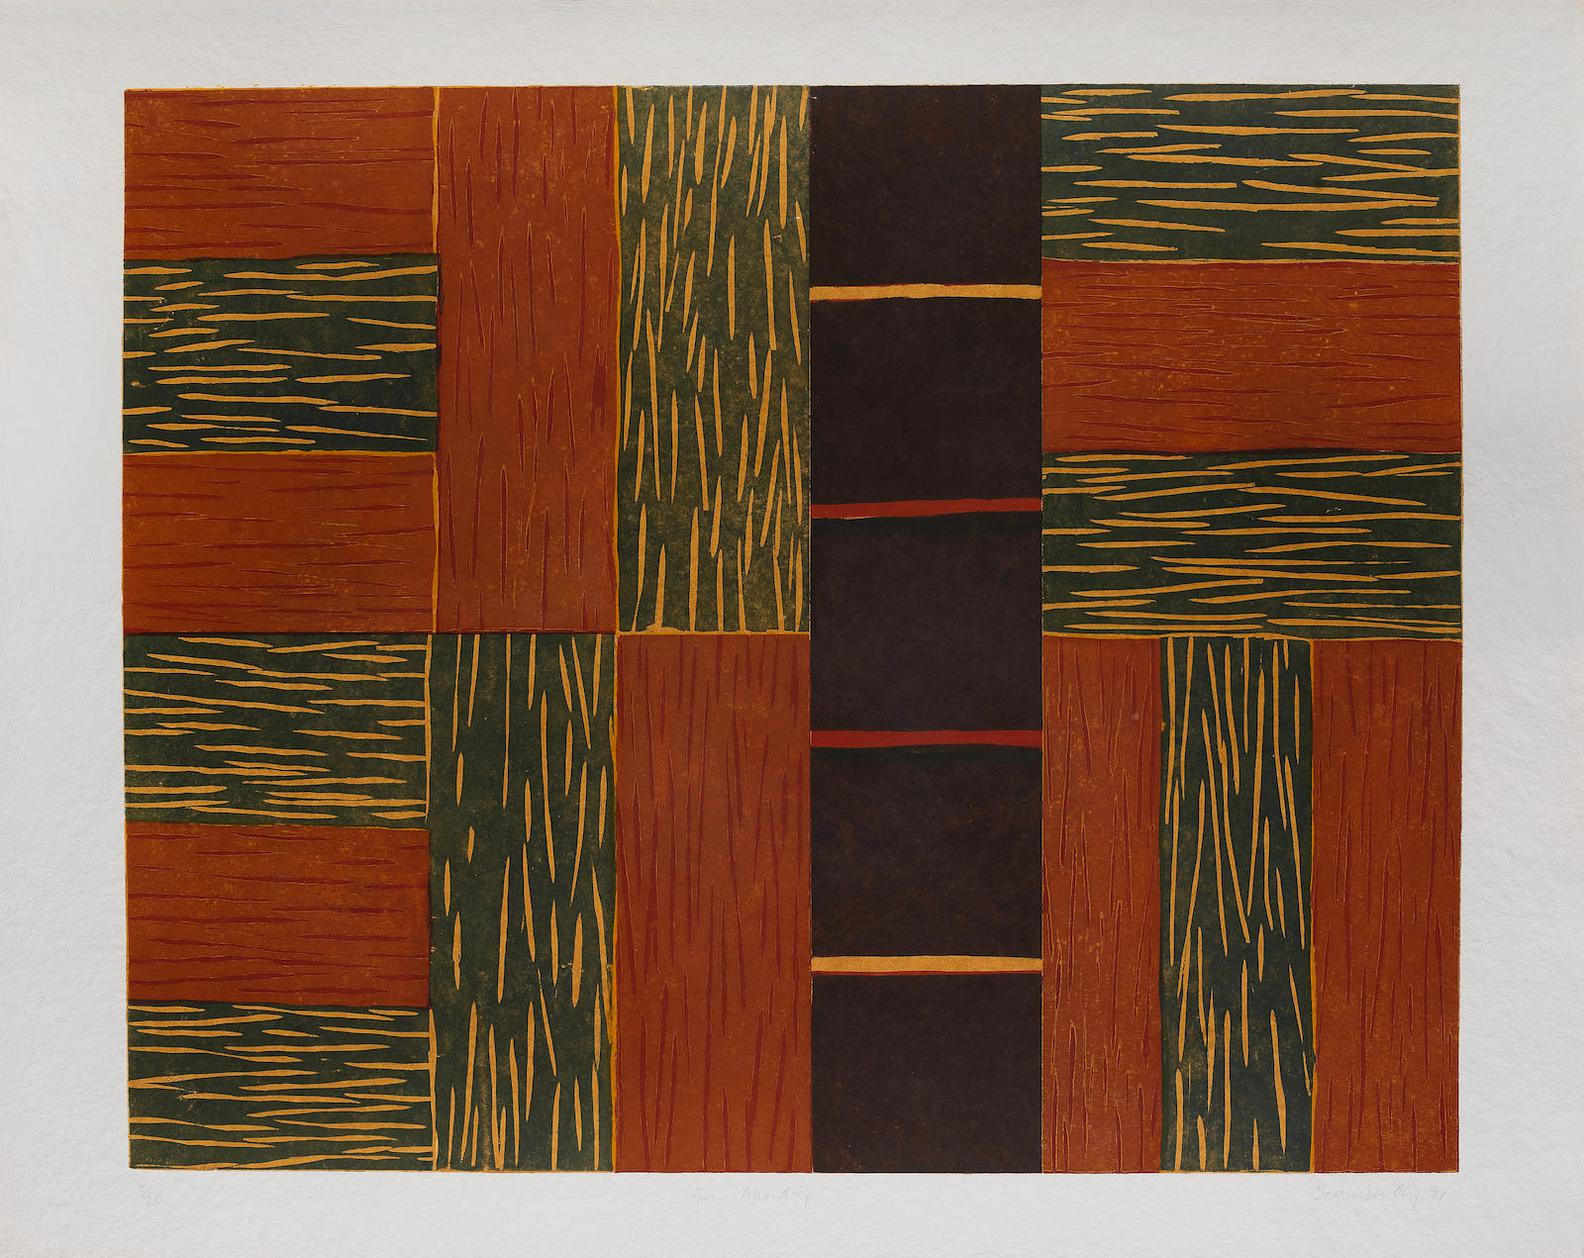 Sean Scully-Green Ascending-1991